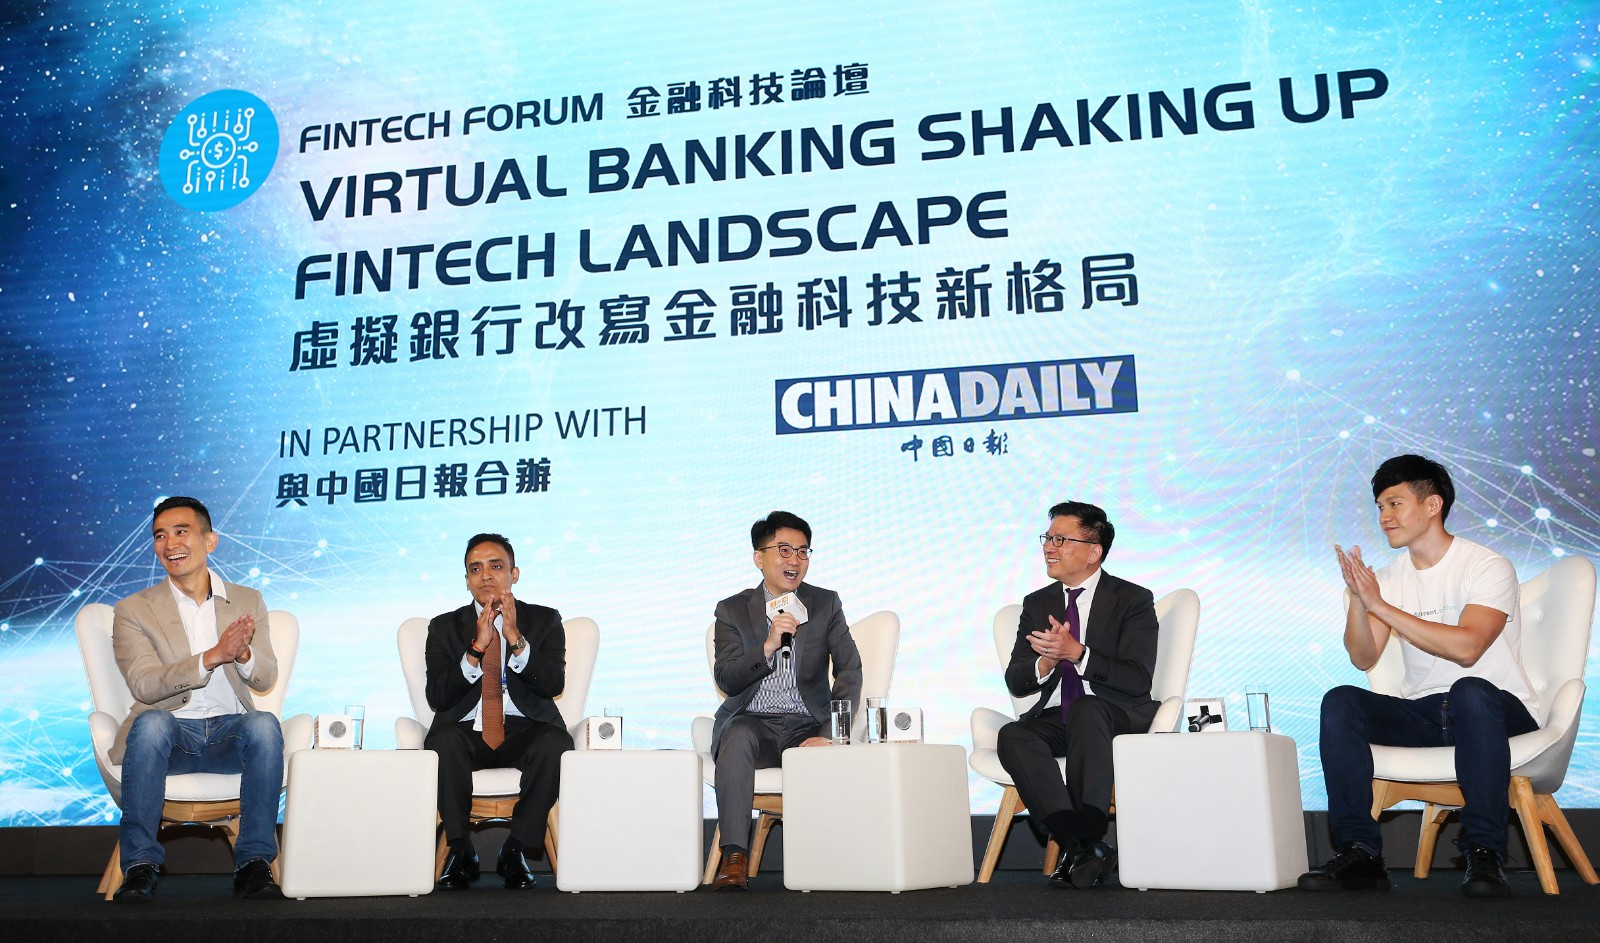 Customer-centricity central to virtual banks